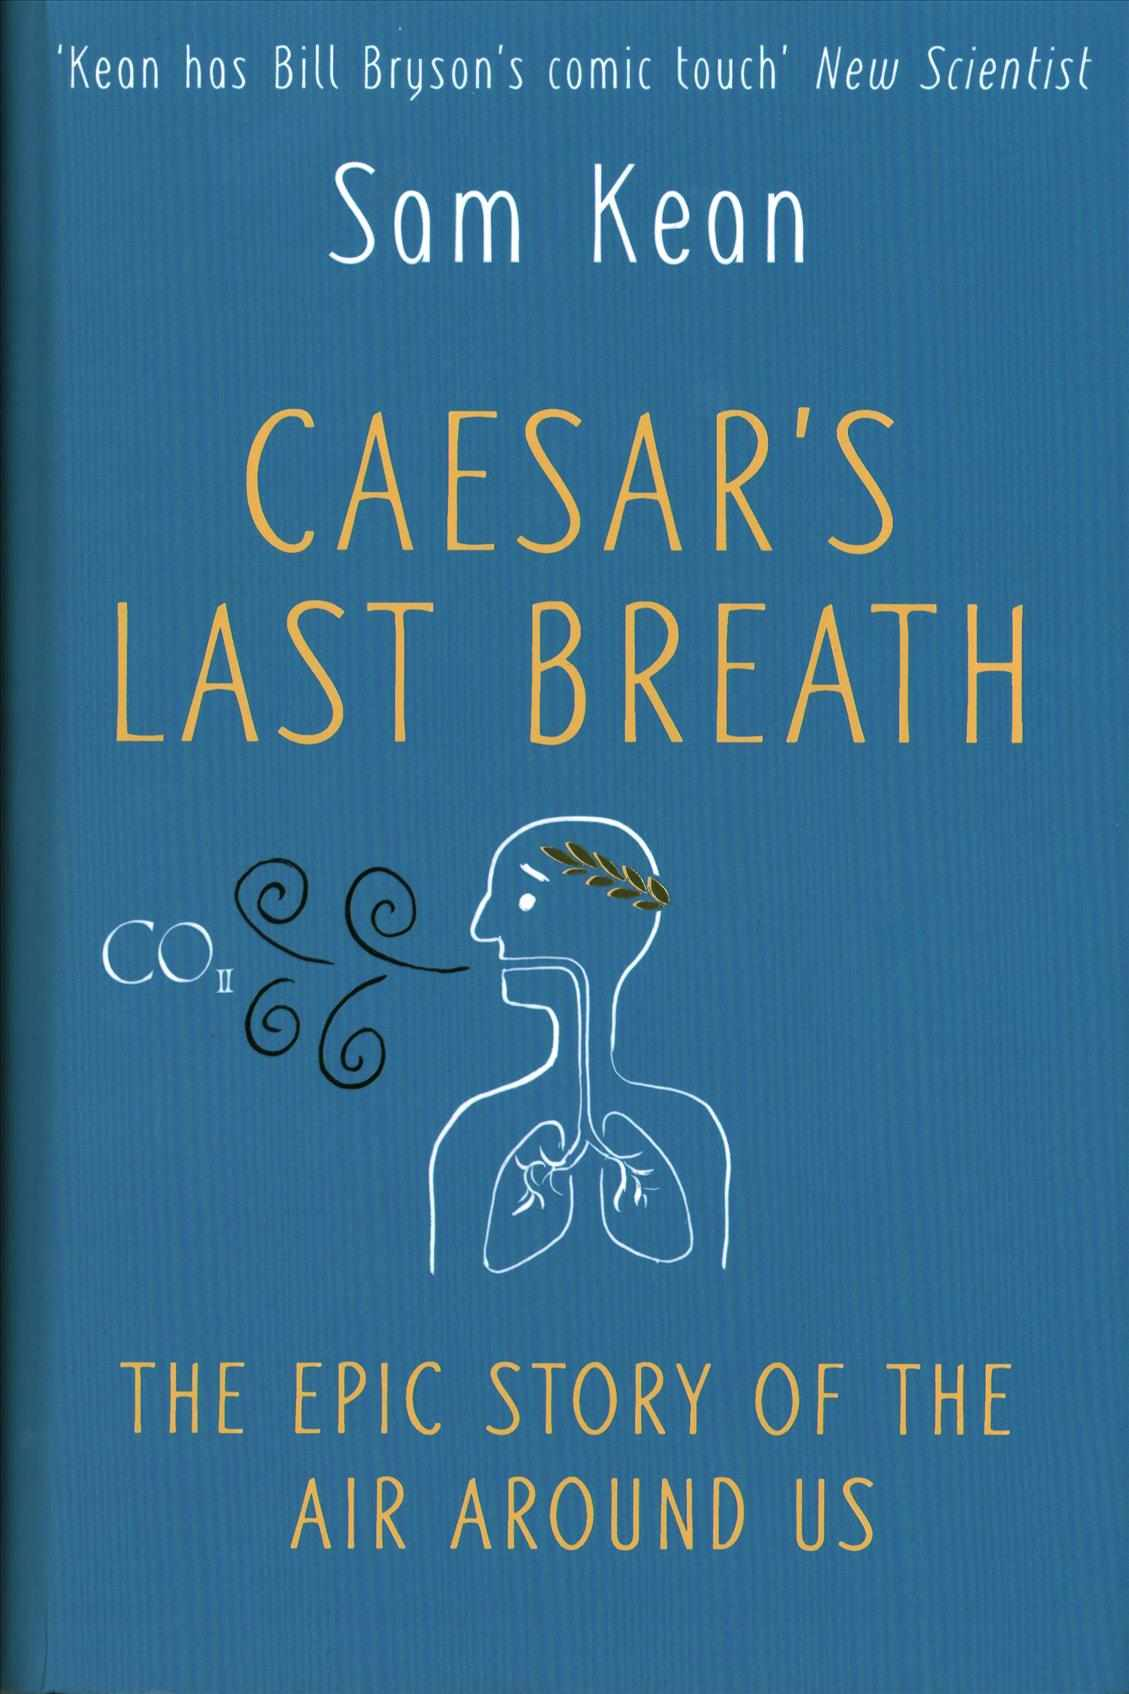 Caesar's Last Breath by Sam Kean is out 20 July (£20, Doubleday)